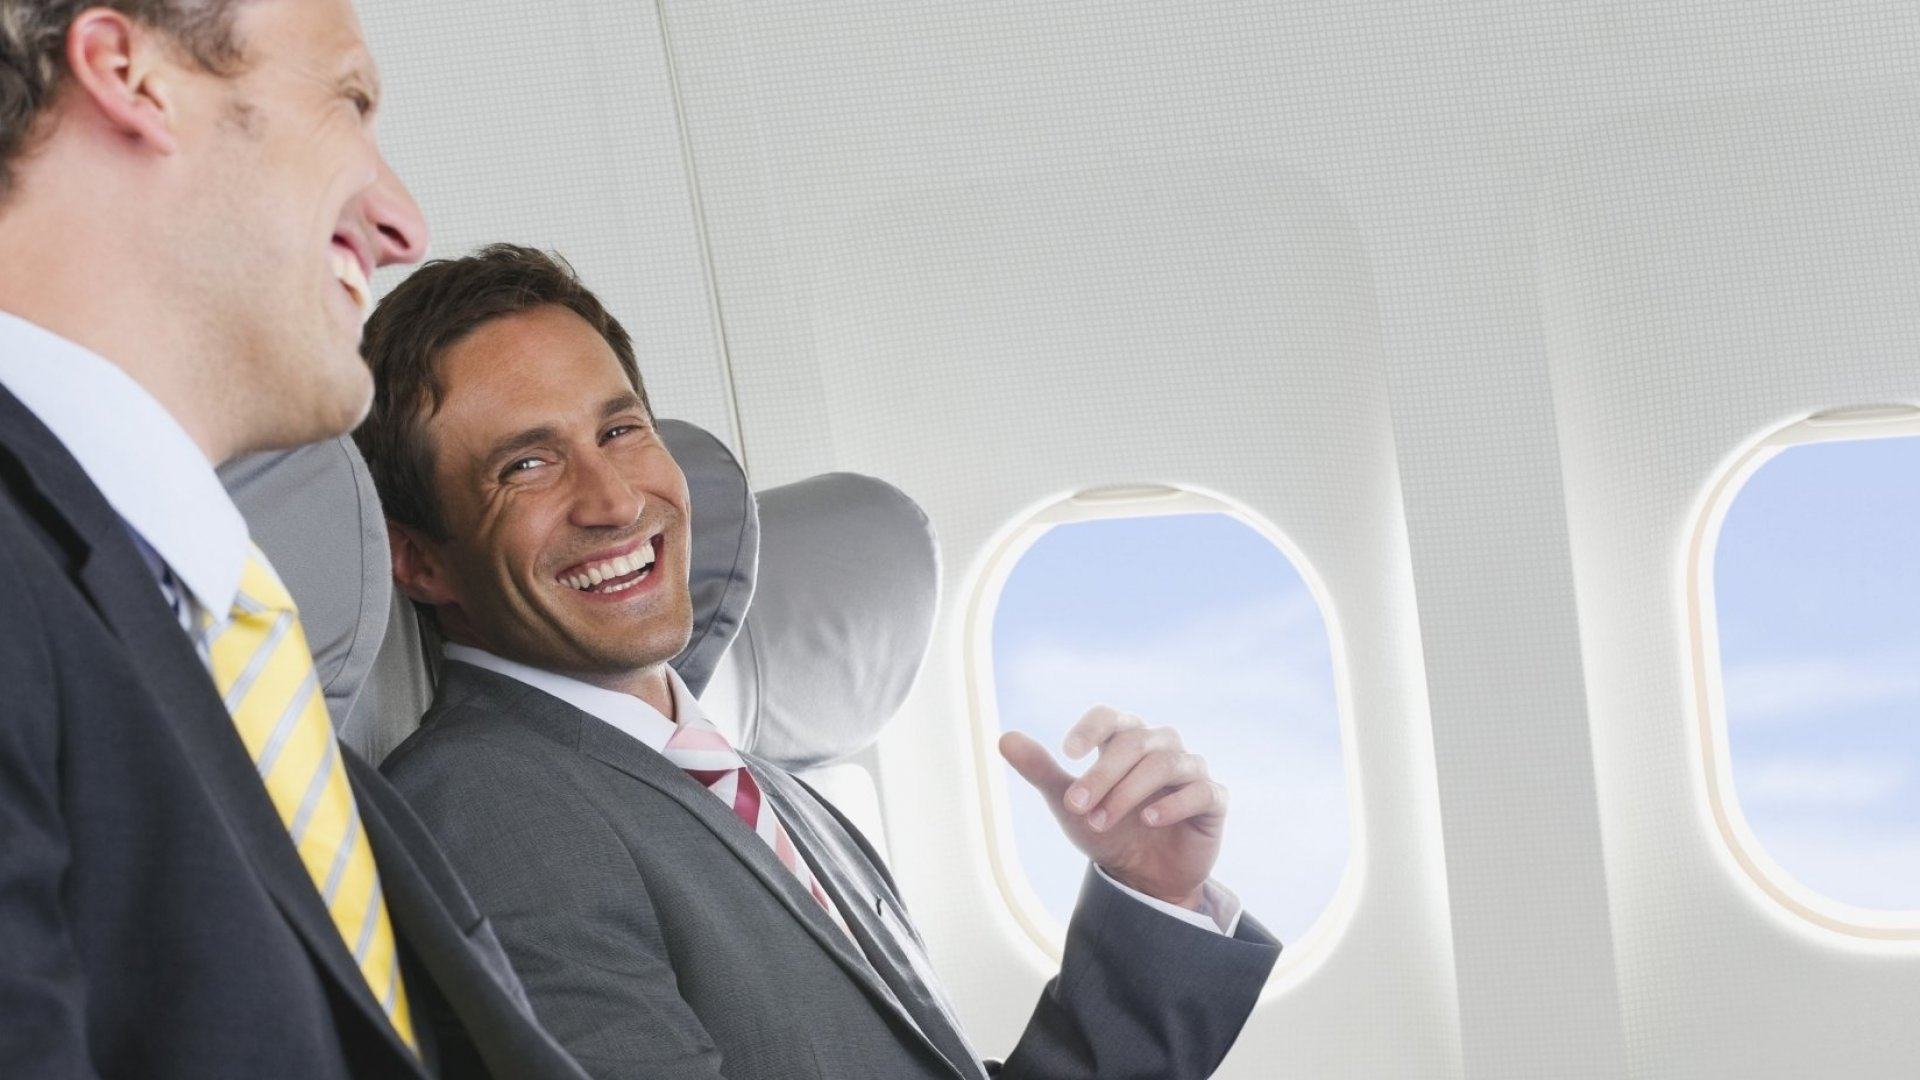 The 4 Best Ways to Network on Your Next Business Flight